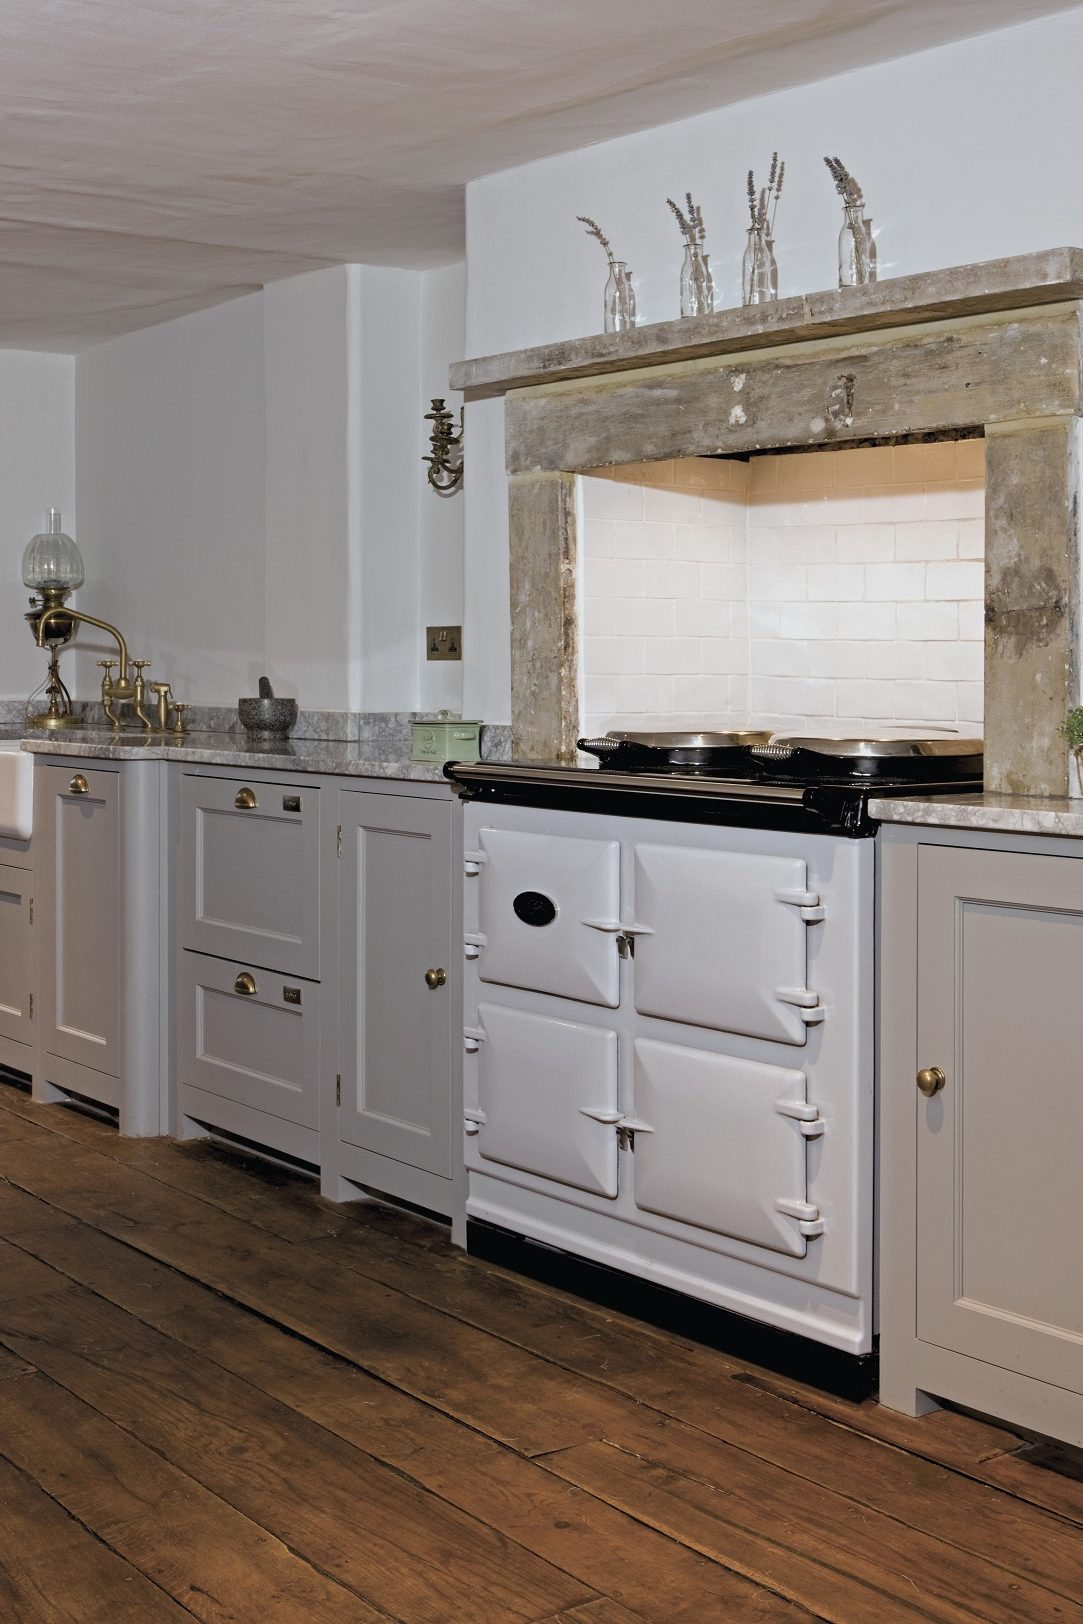 Country kitchen AGA ans stone mantel